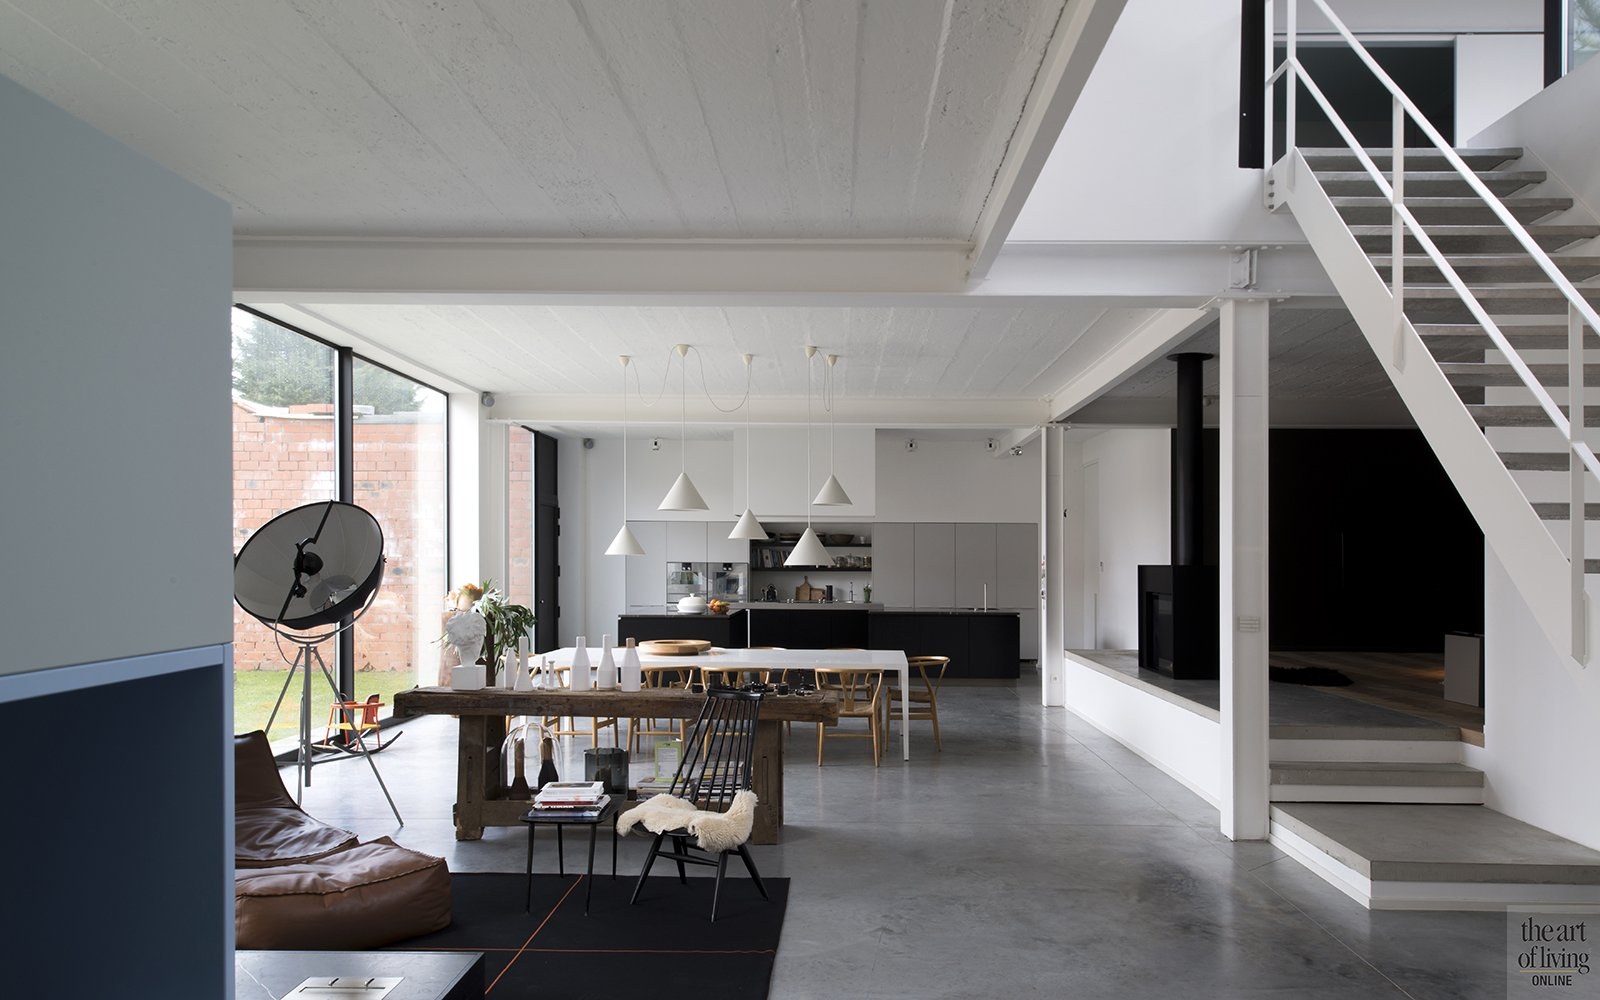 interieur make-over, kove interieurarchitecten, the art of living